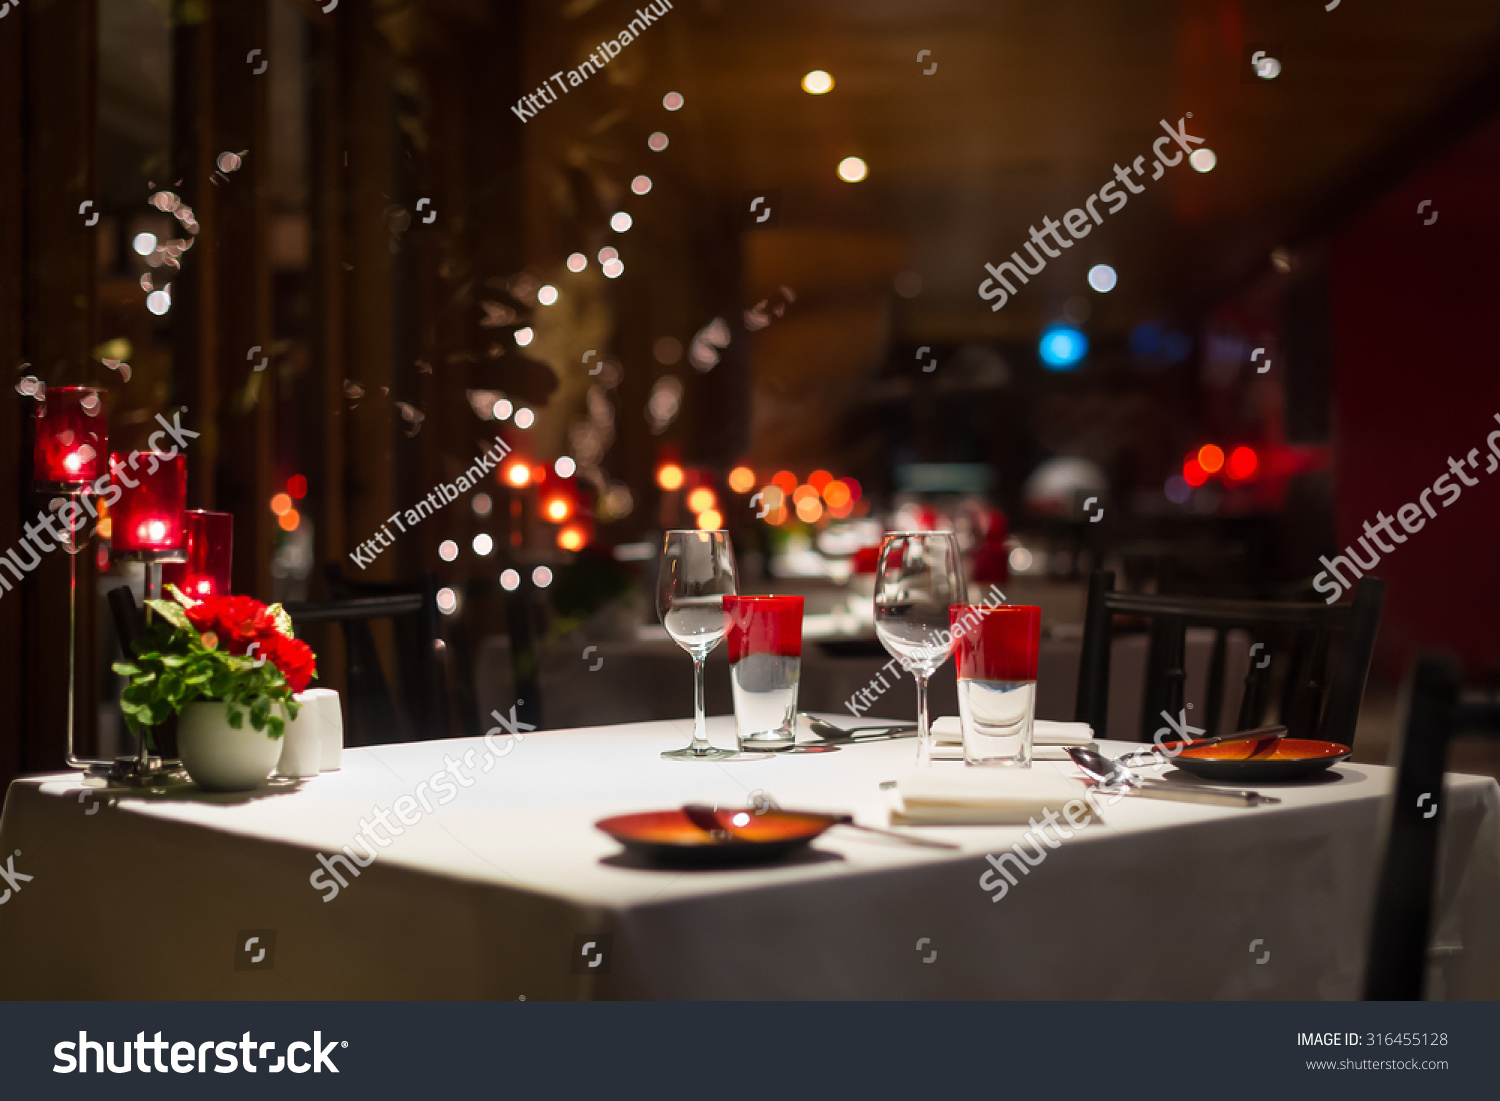 Romantic Dinner Setup Red Decoration With Candle Light In